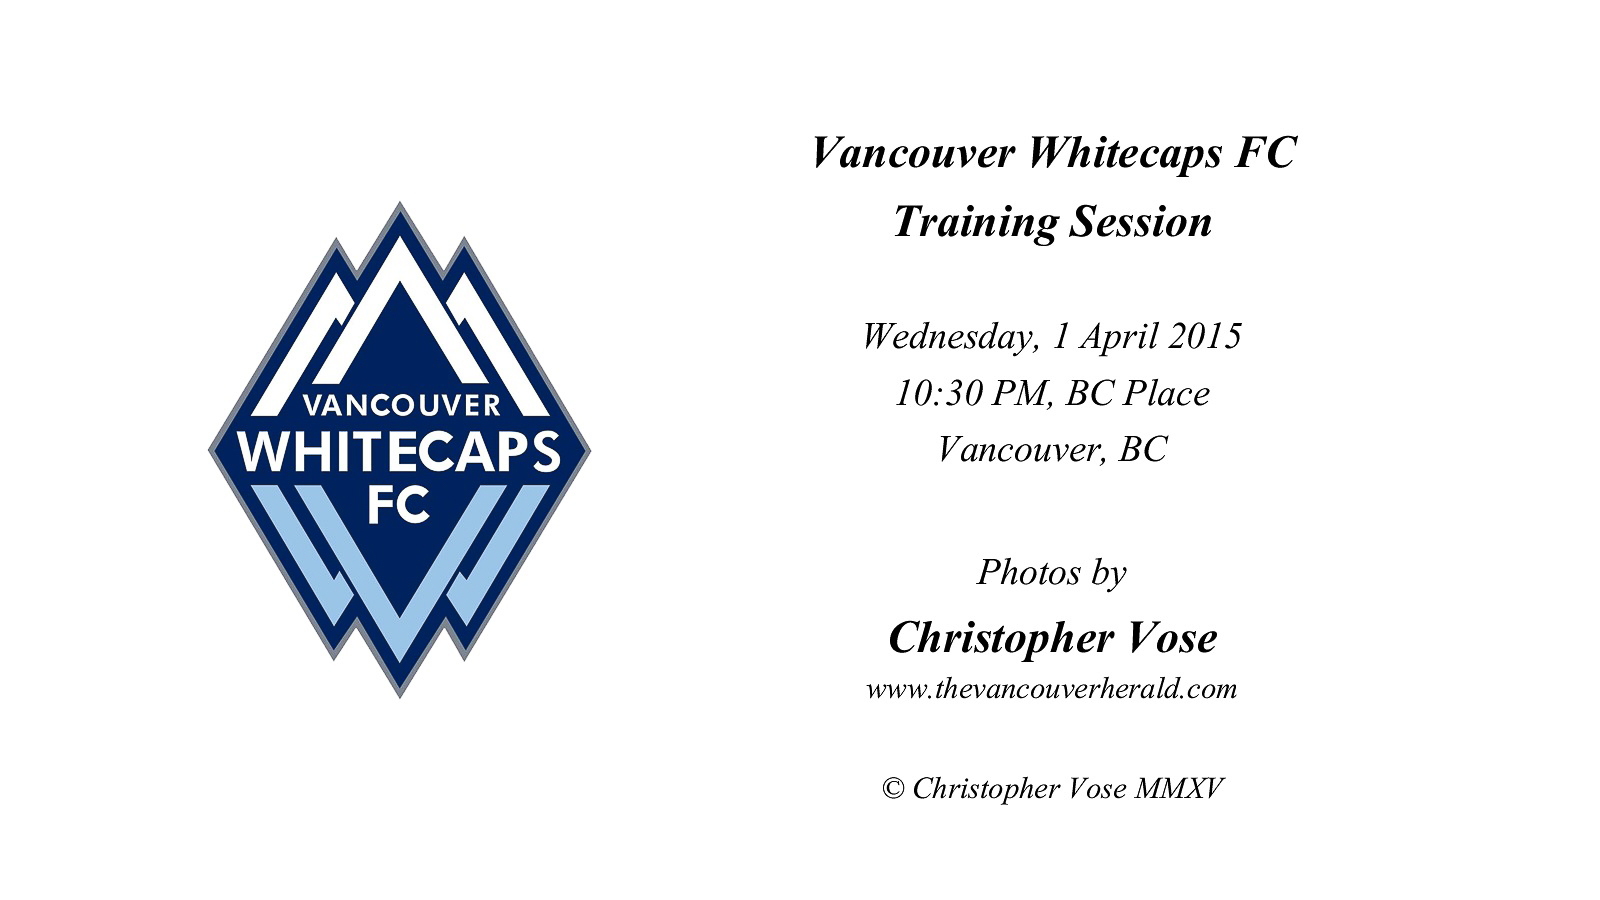 2015-04-01 Vancouver Whitecaps FC Training Session.jpg